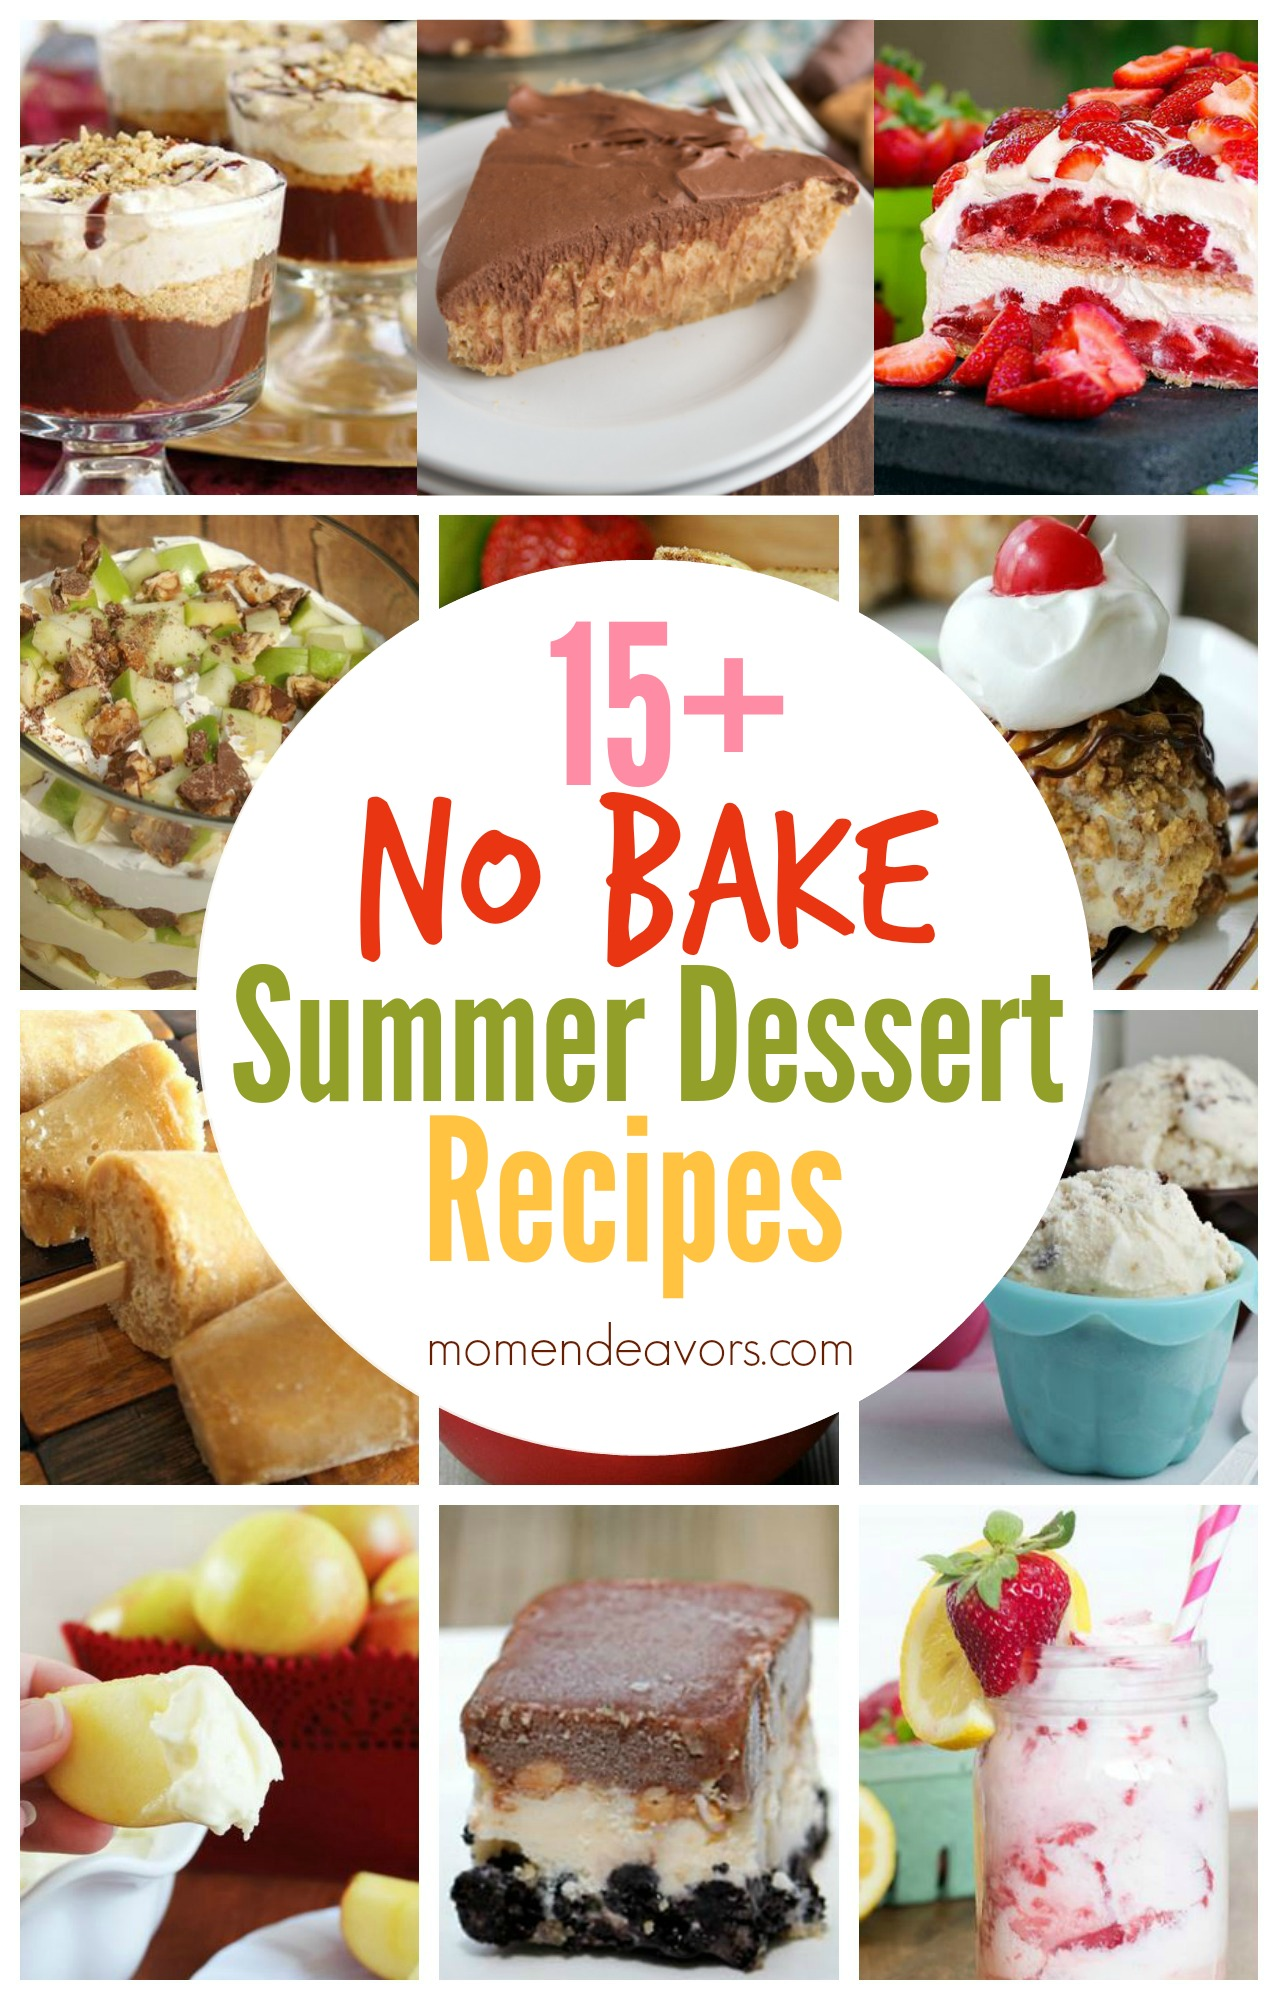 No Bake Summer Dessert Recipes